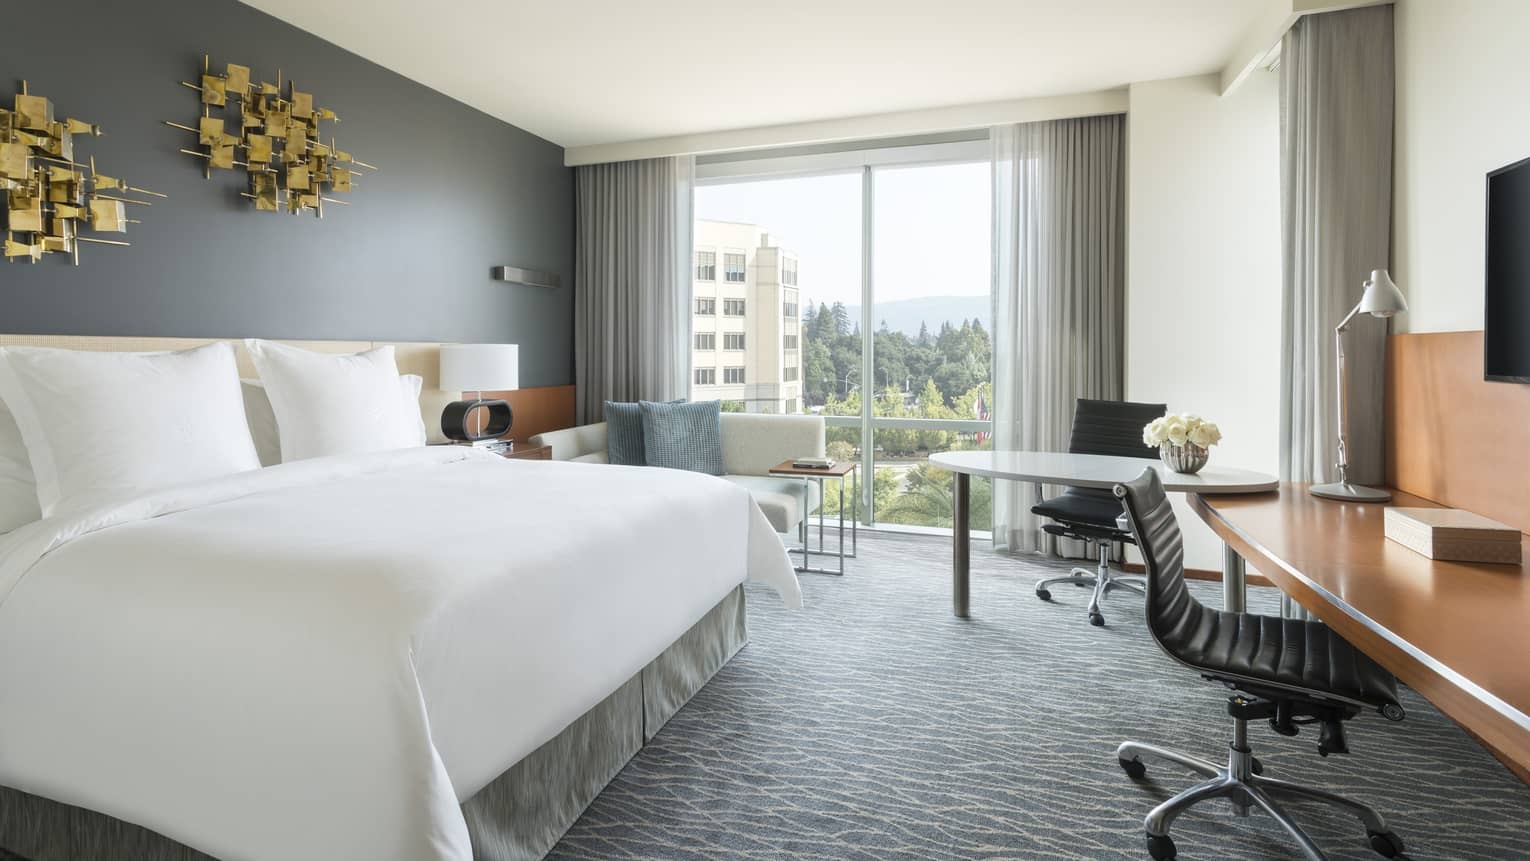 Premier Room Bed Under Modern Gold Art, Two Desks, Chaise By Floor To